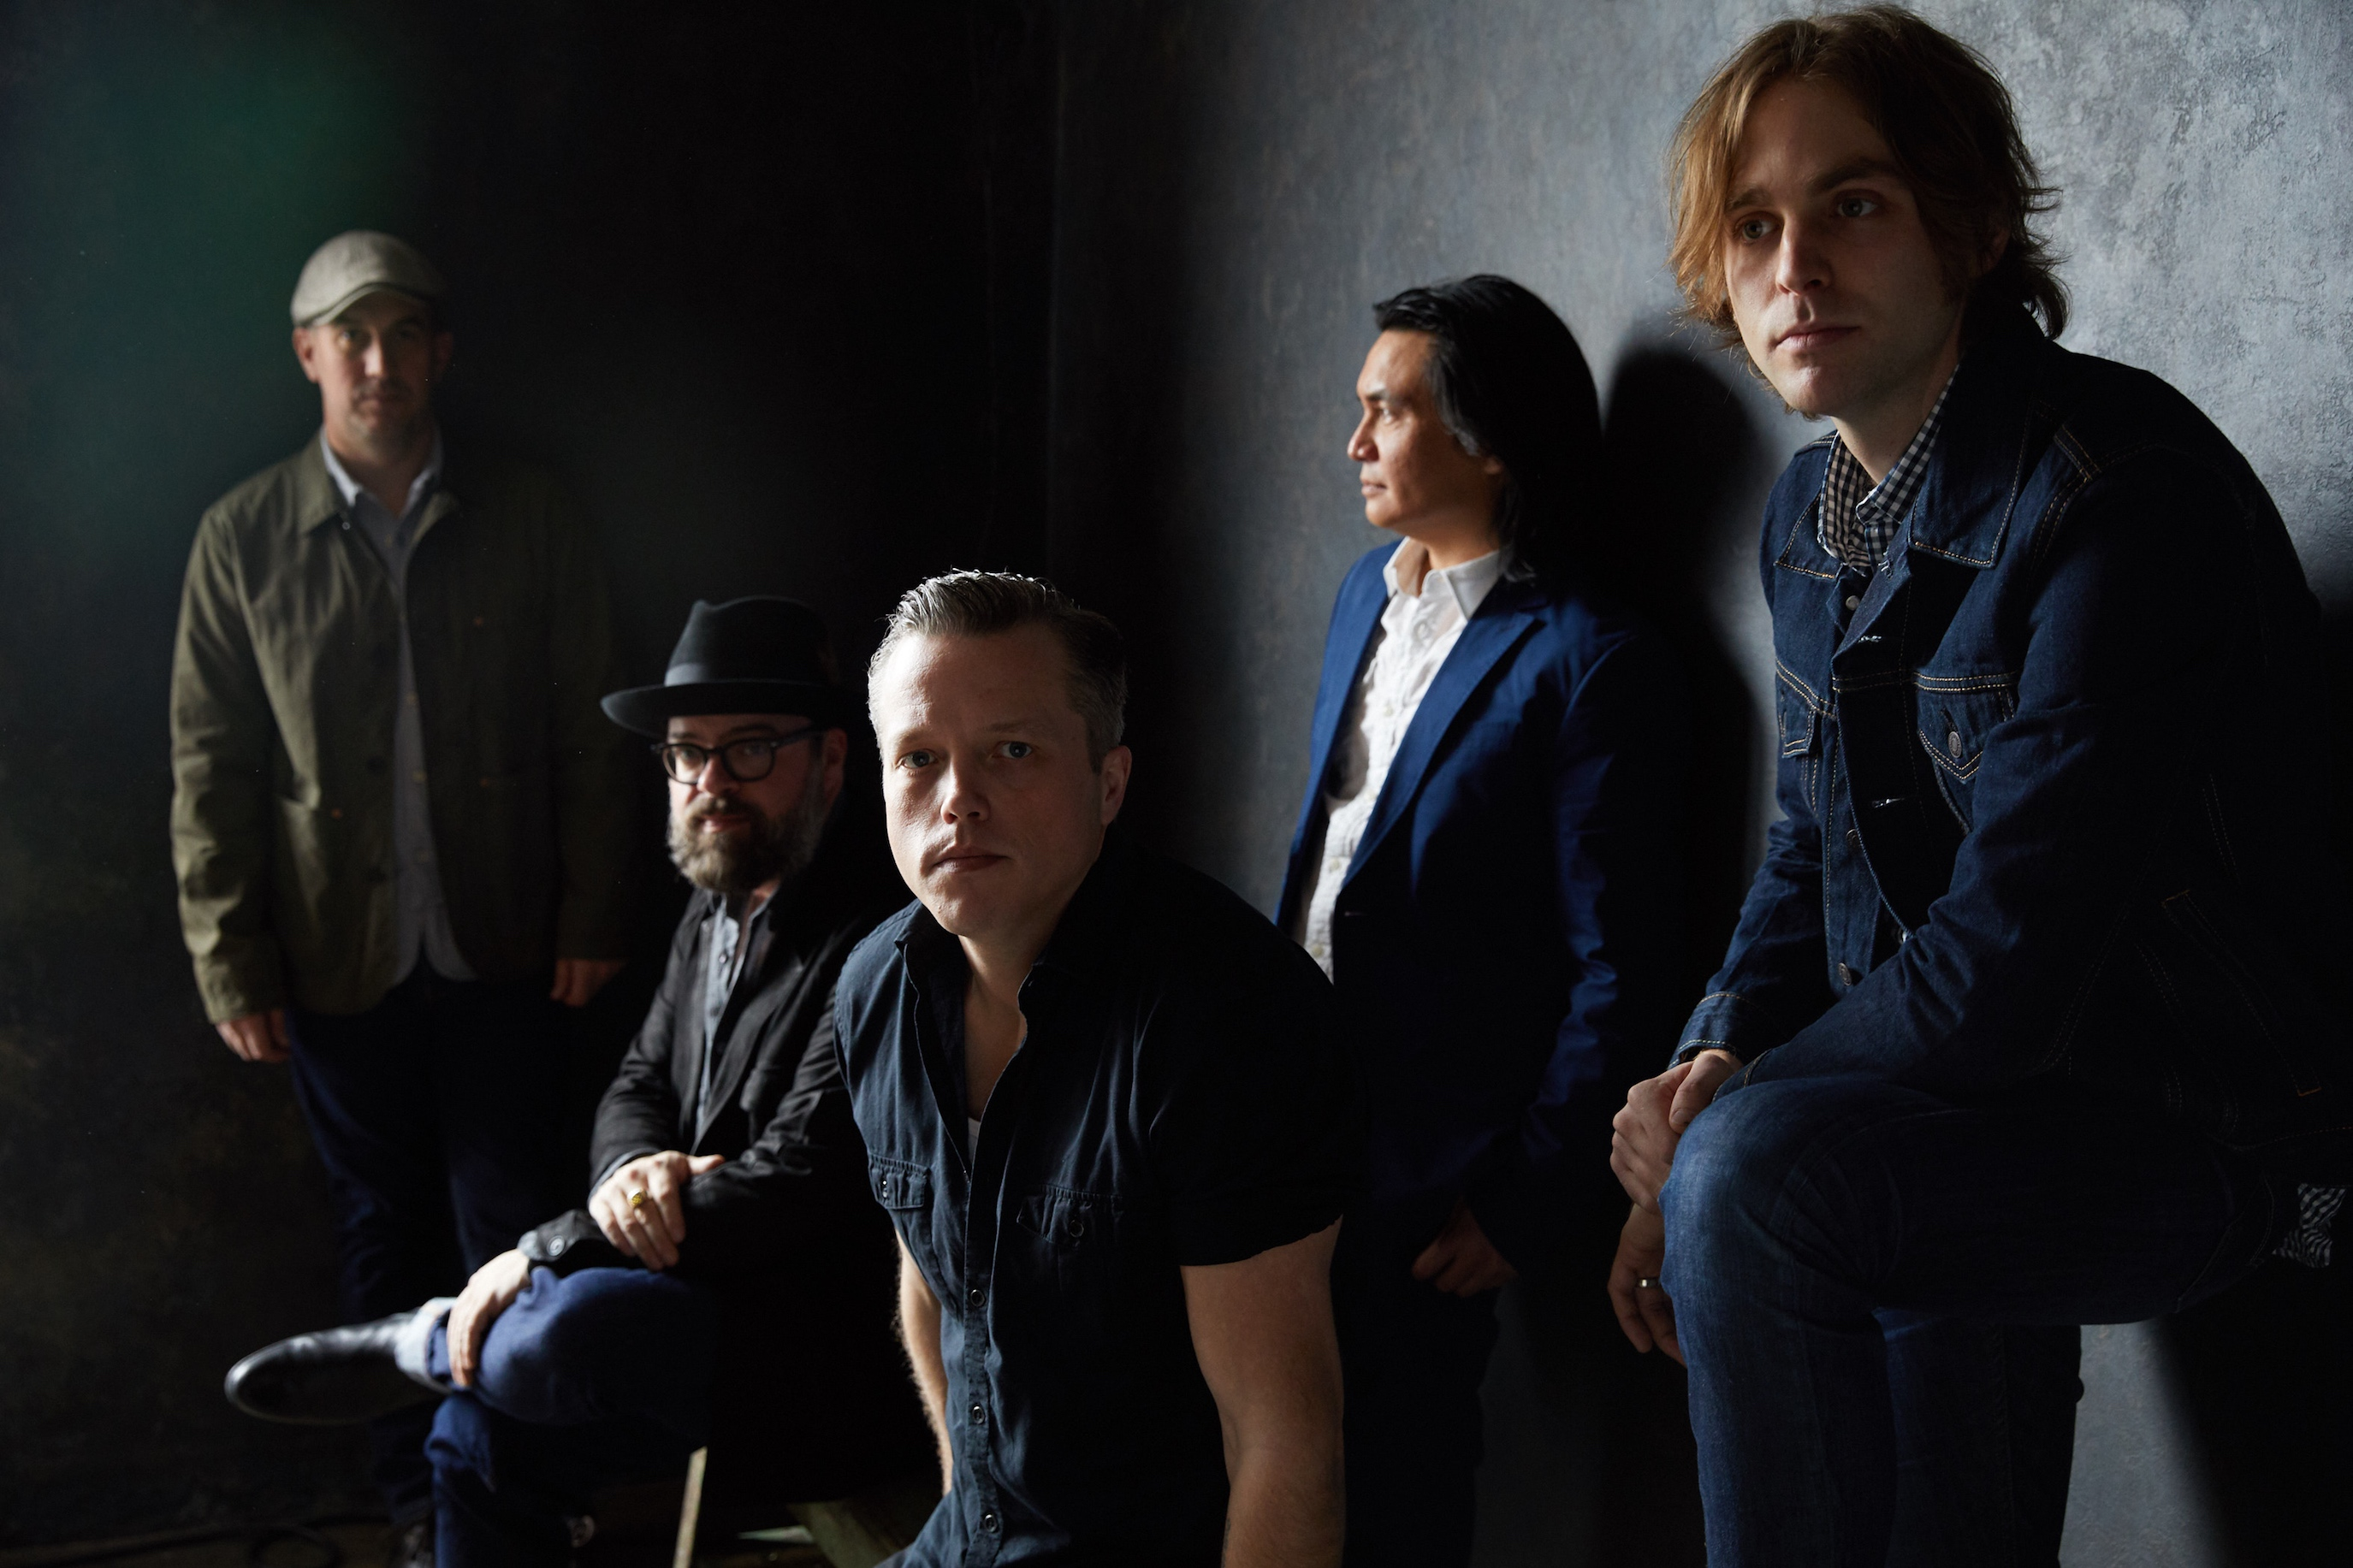 Jason Isbell's ShoalsFest hits high notes in debut